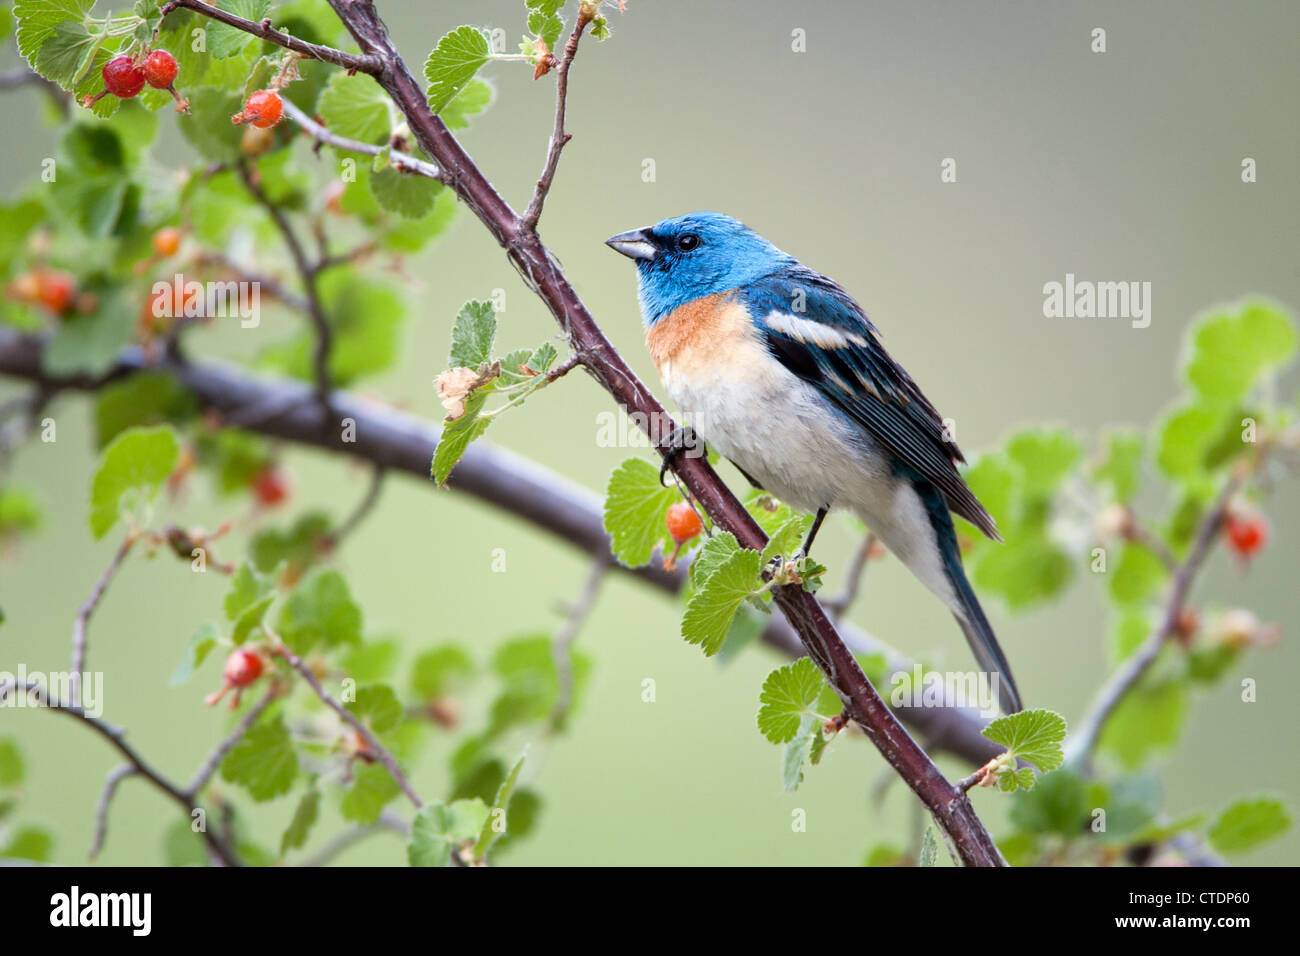 Lazuli Bunting in Western Red Currant - Stock Image